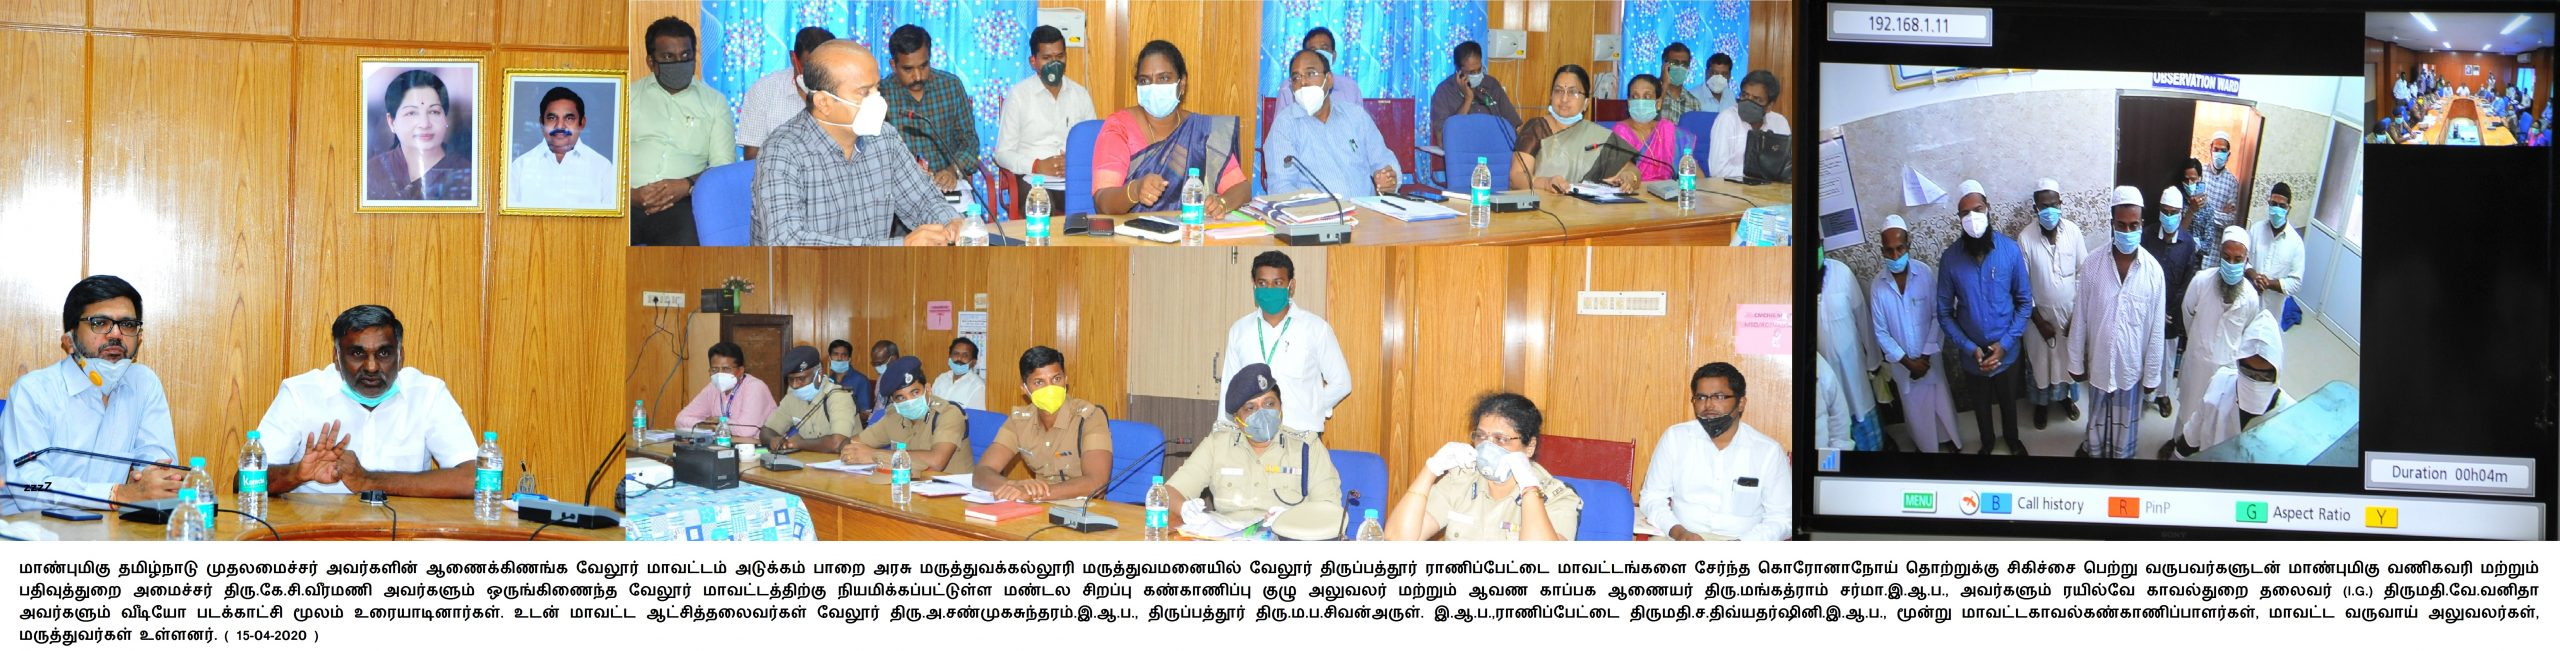 Honorable Commercial Tax and Registration Department Minister K.C.Veeramani and Zone Monitoring Special Officers Conversation with Corona Infected Patient 15-04-2020